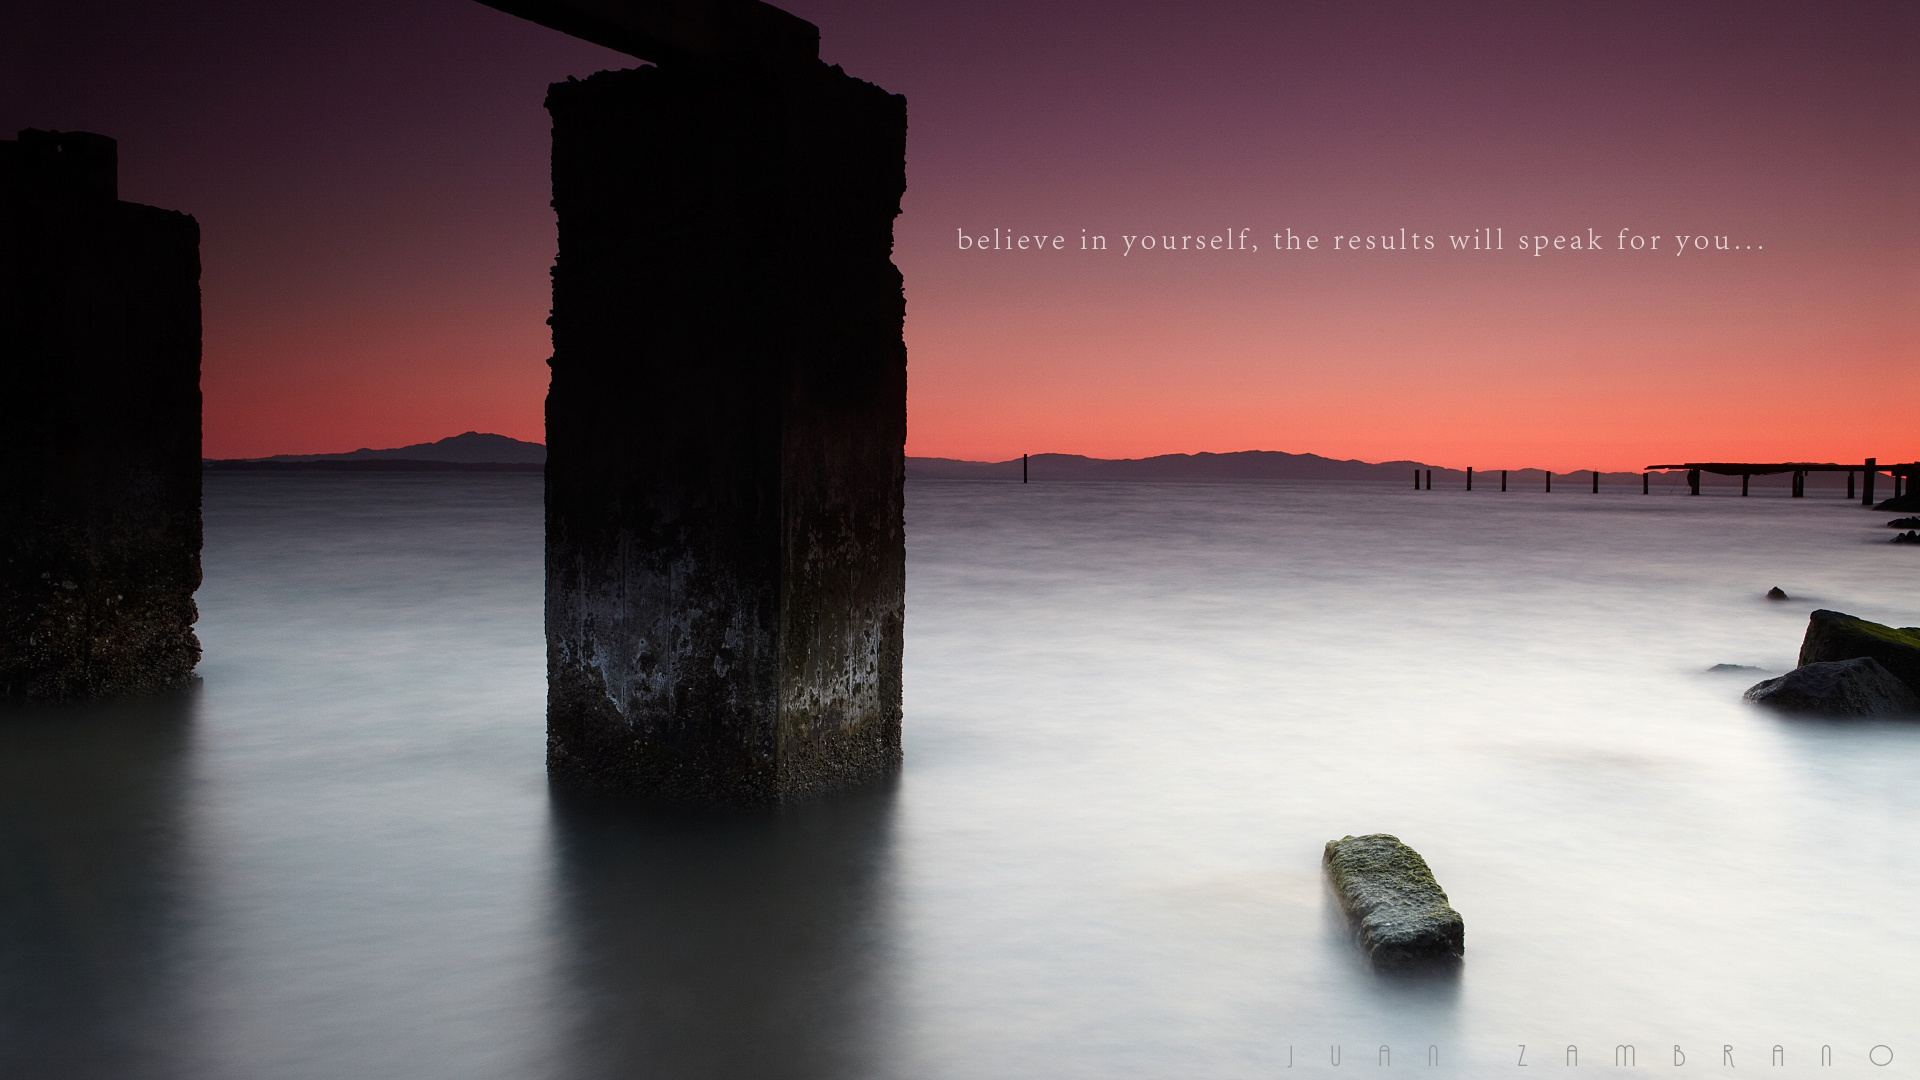 Motivational Life Quotes Wallpapers And Desktop Backgrounds - Hd Background For Desktop Inspirational Quotes - HD Wallpaper